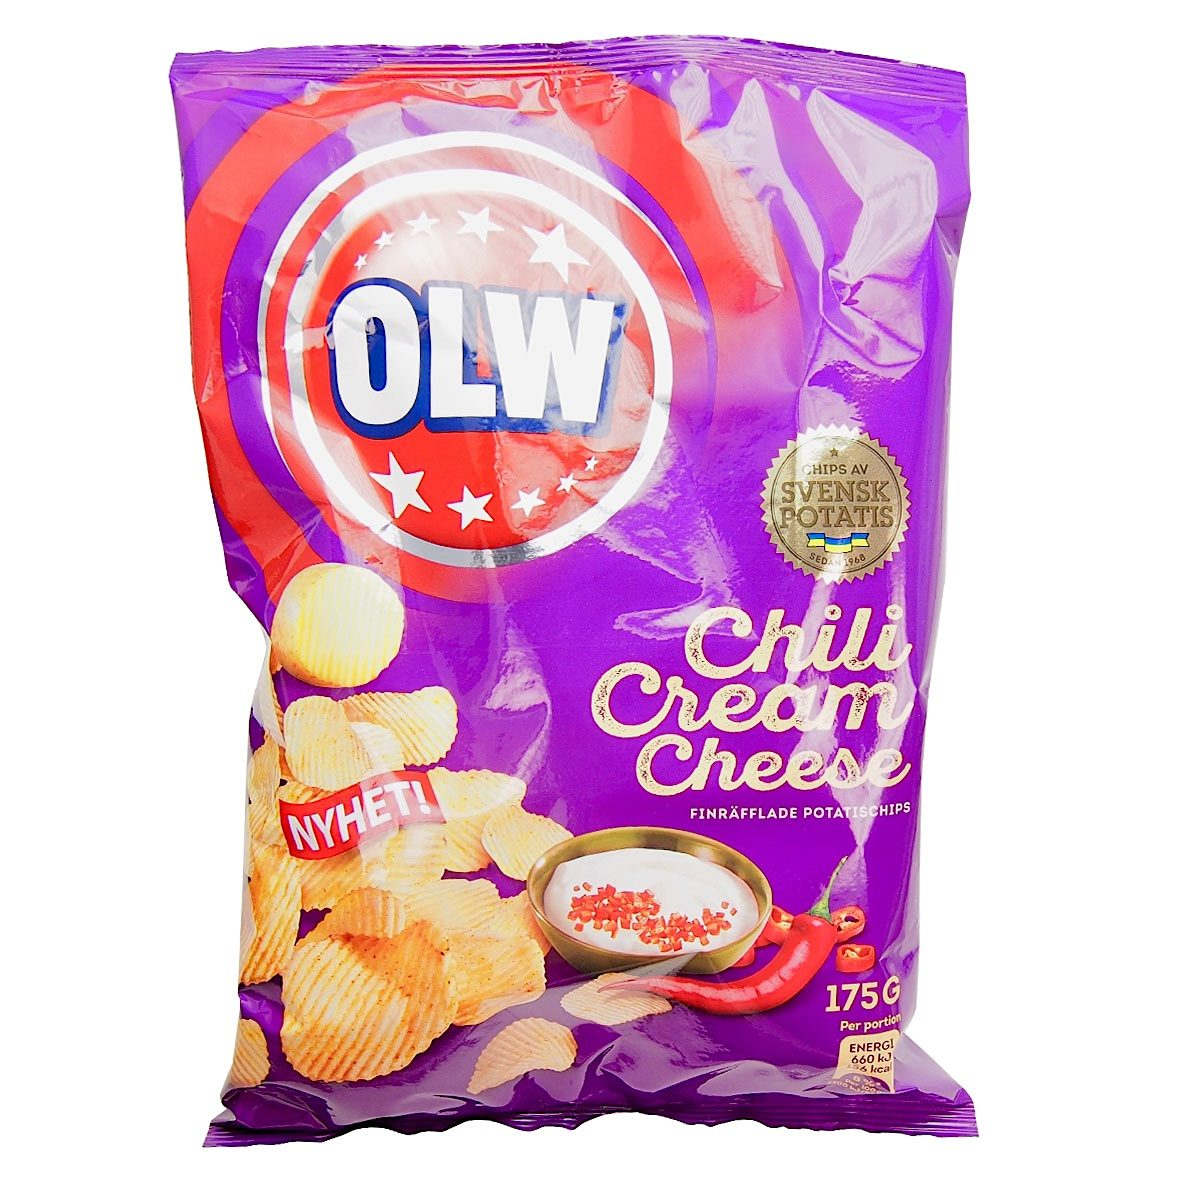 OLW Chips Chili Cream Cheese (175g) 1